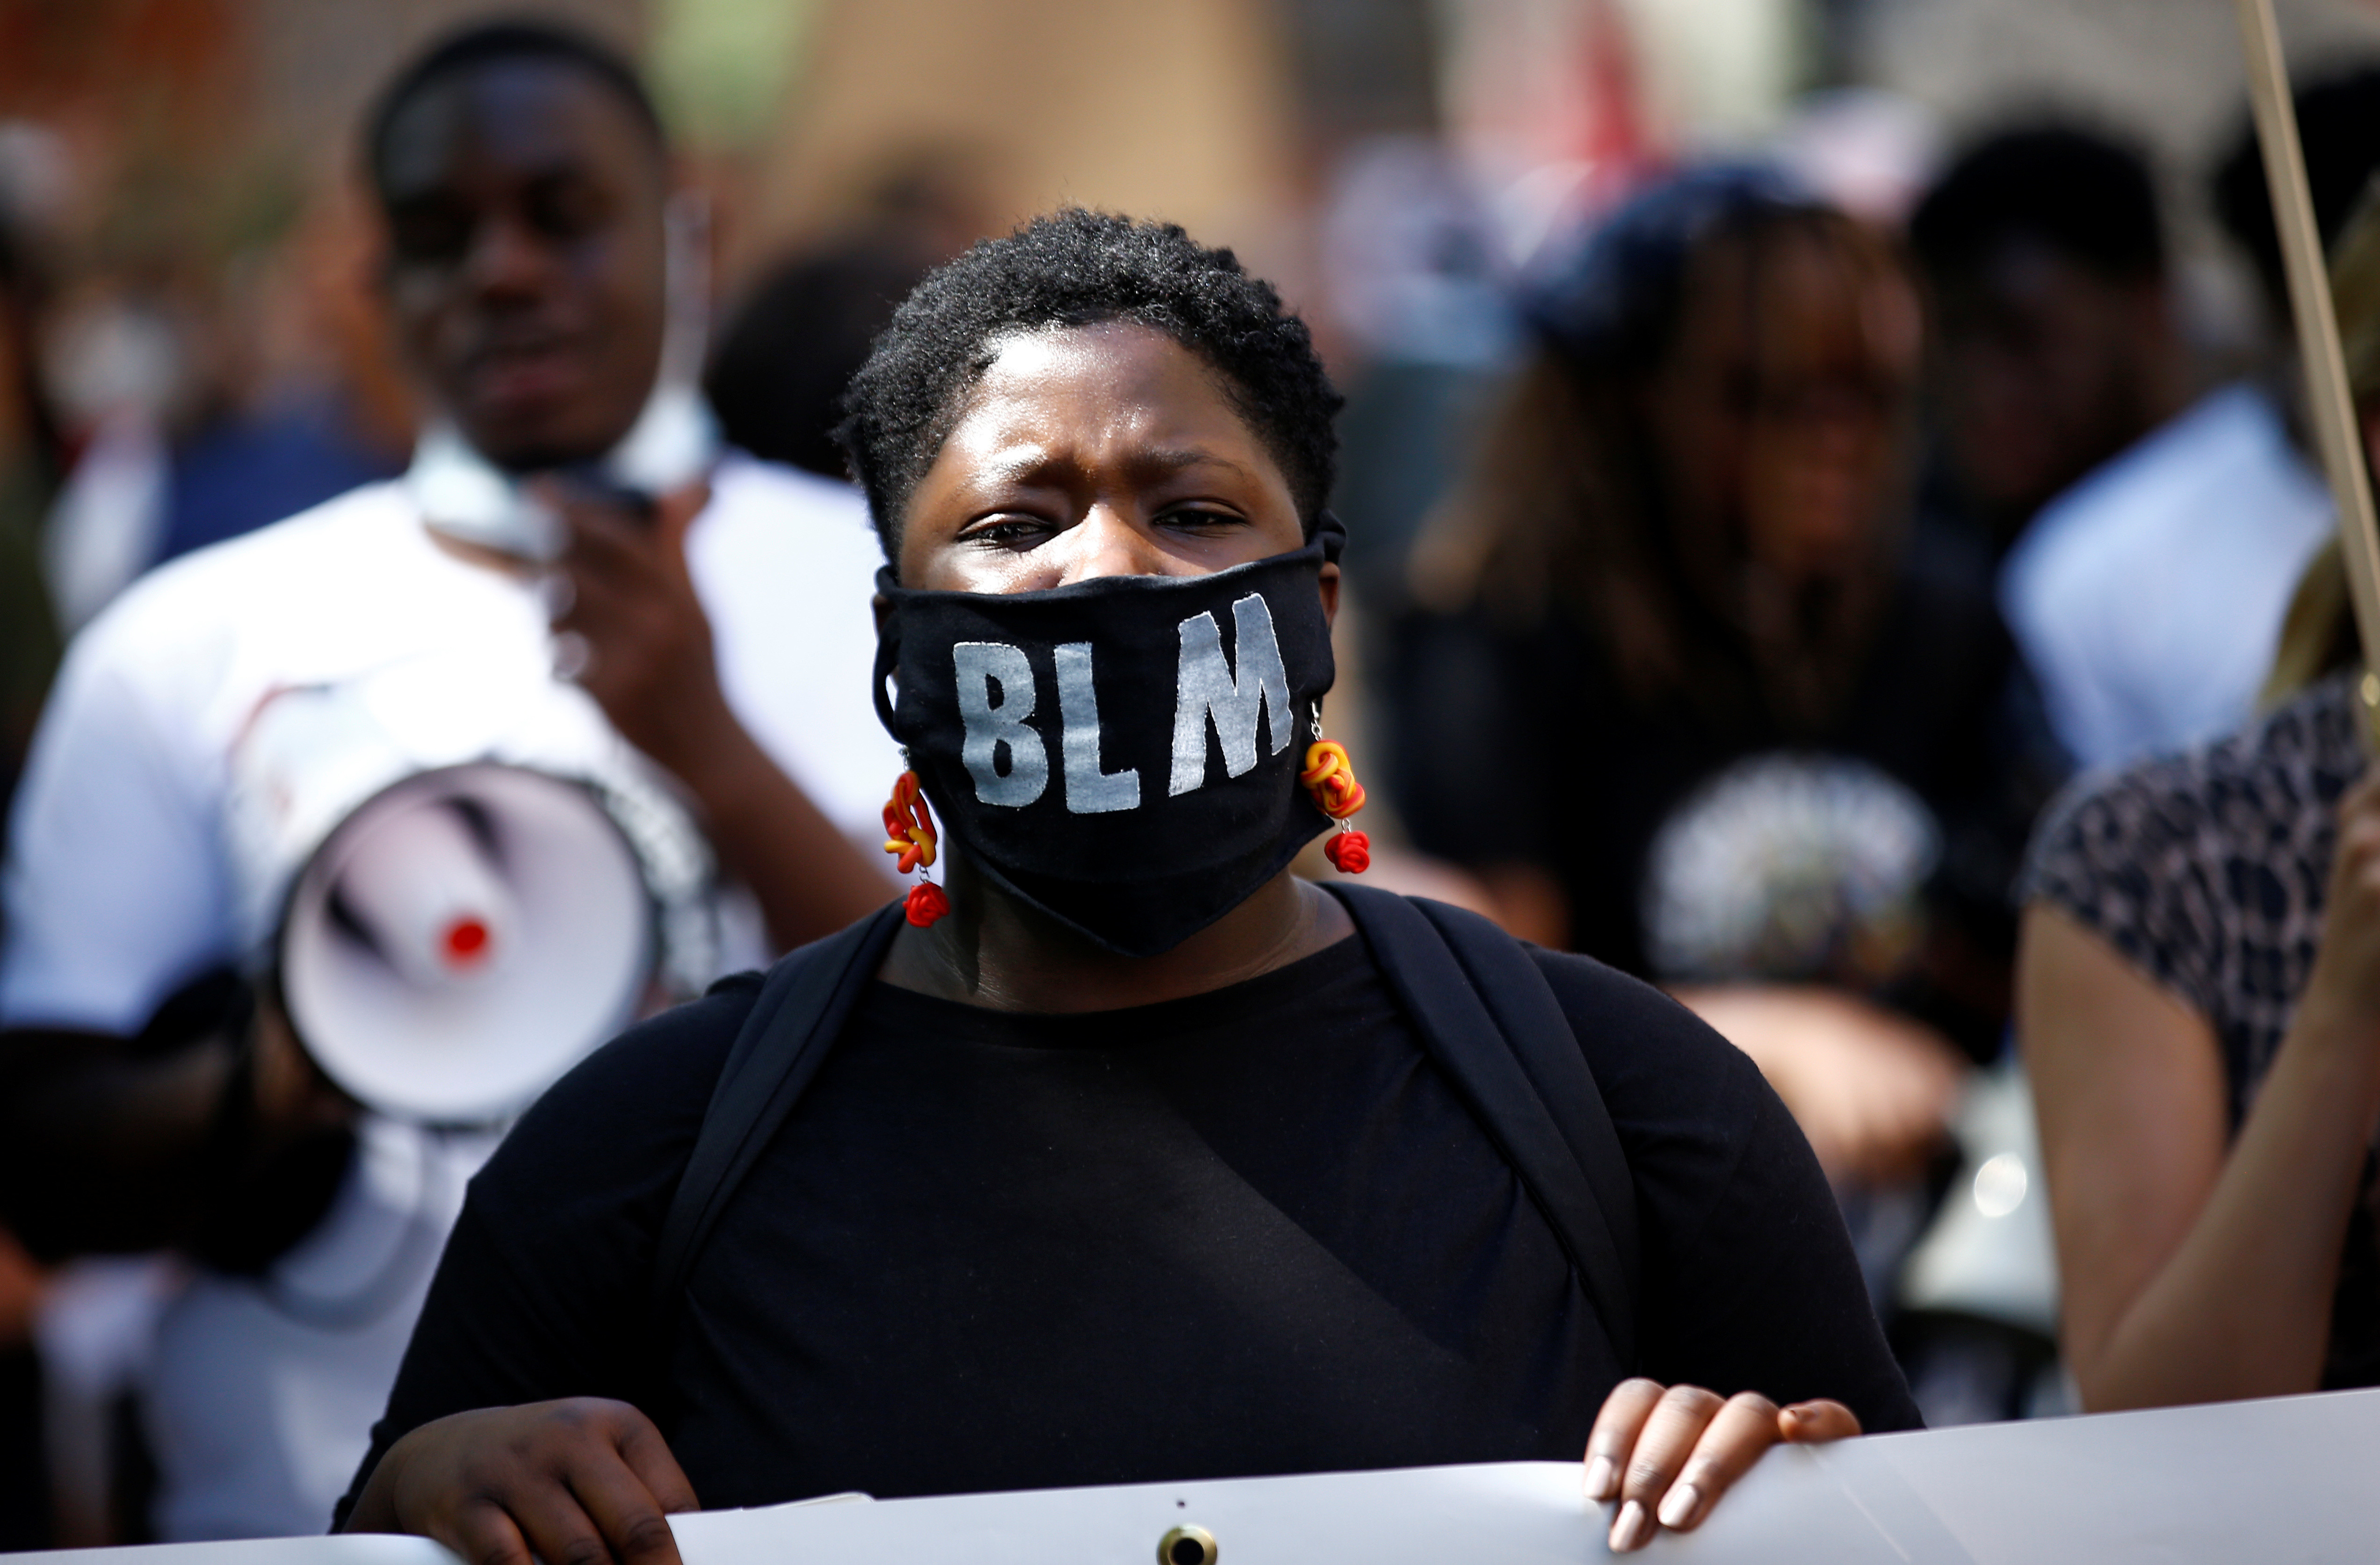 A demonstrator wearing a face mask marches during a Black Lives Matter protest in London, Britain, July 12, 2020